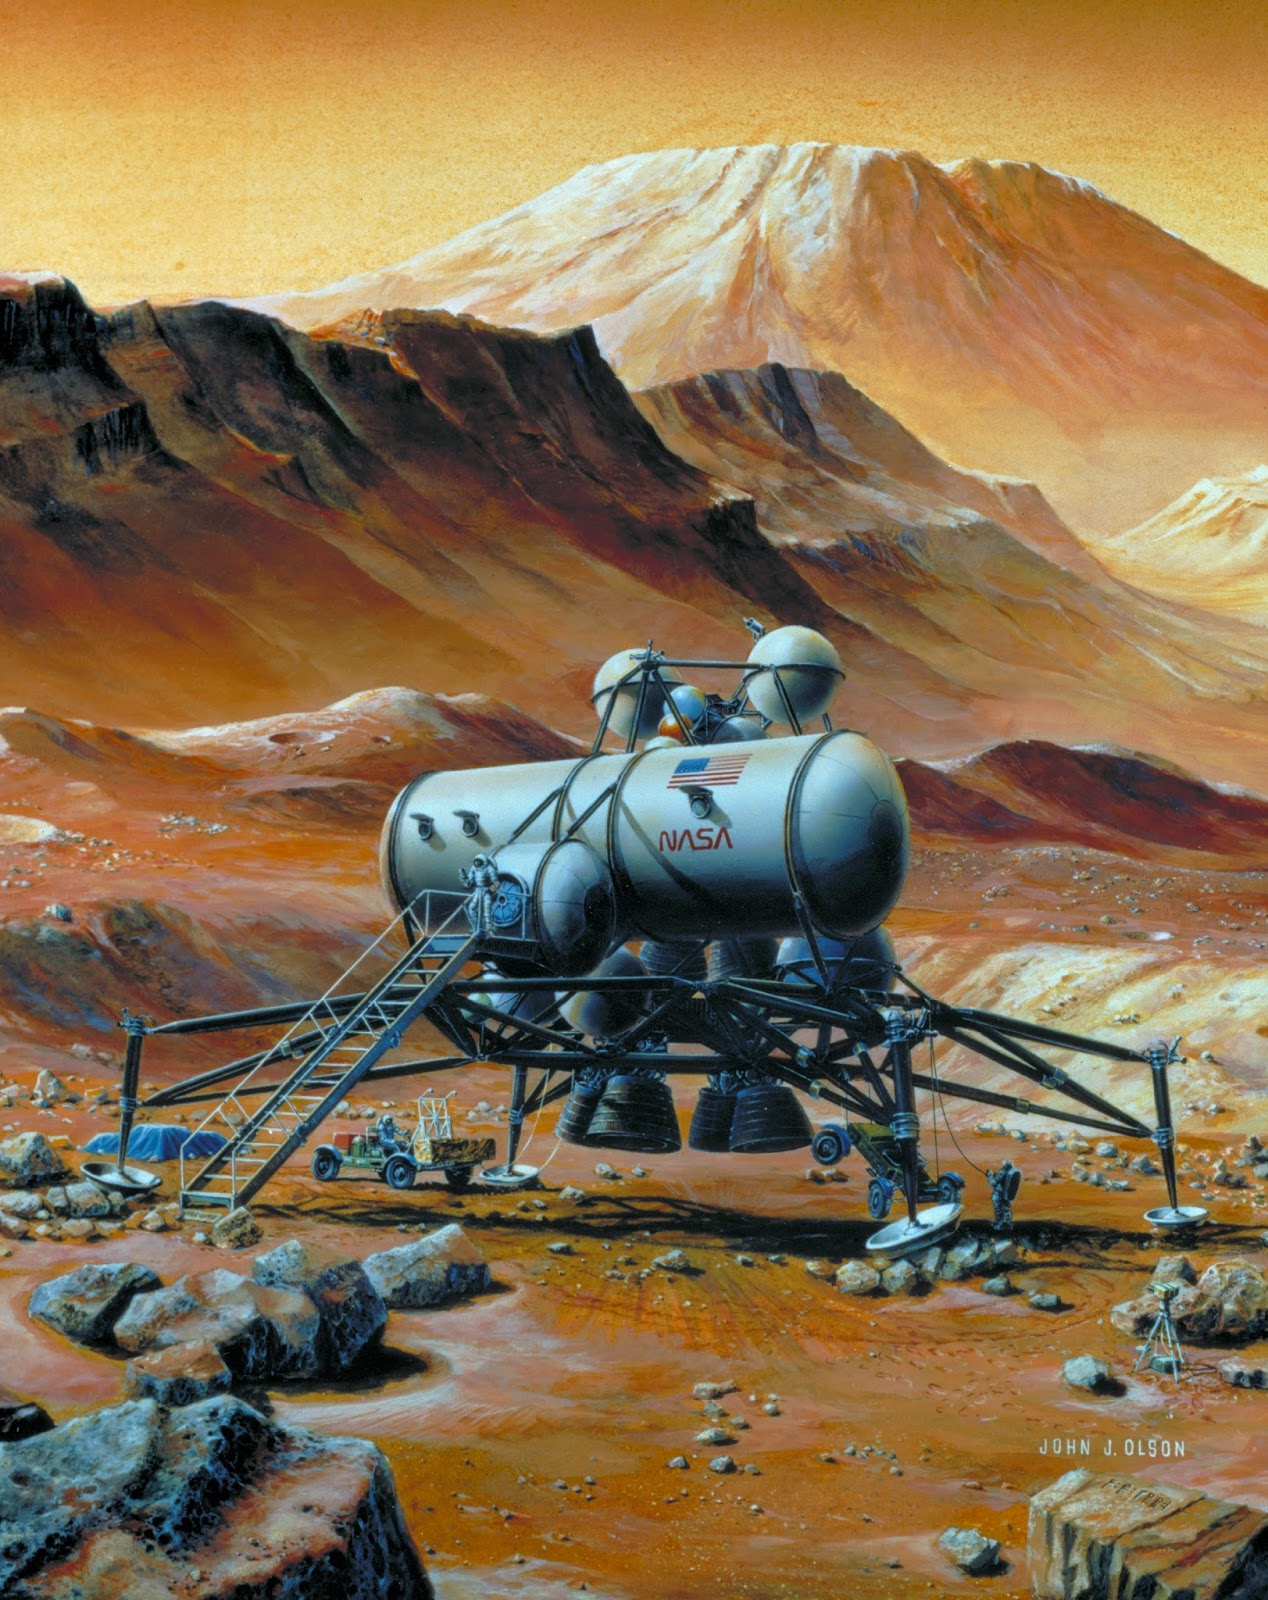 Mars base by John J. Olson (NASA, 1992)